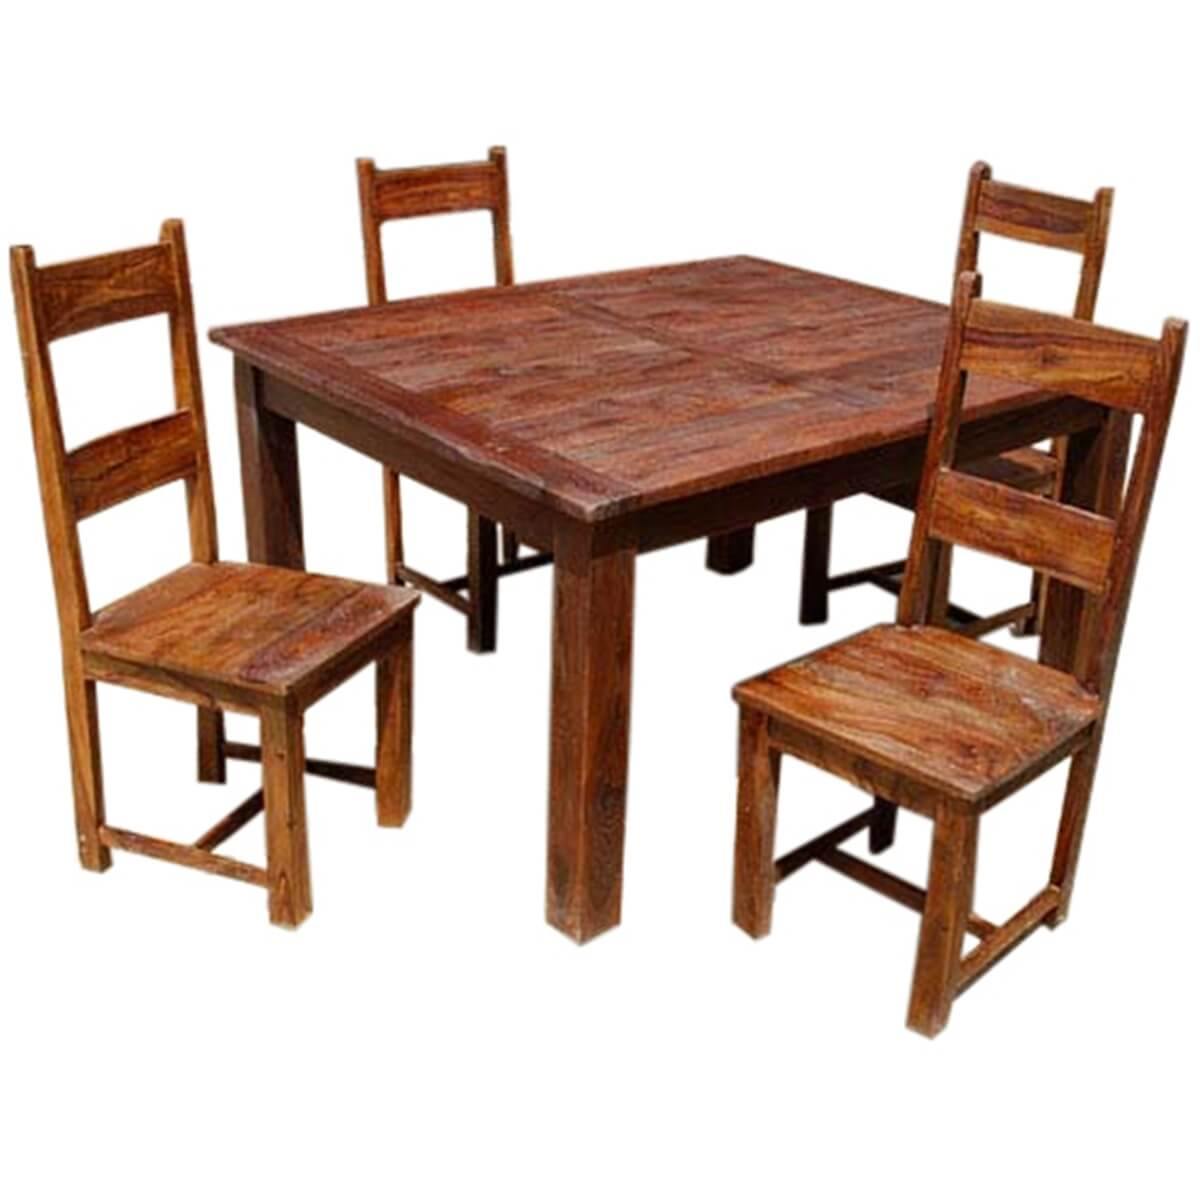 Dining Room Sets Wood: Rustic Solid Wood Appalachian Dining Room Table & Chair Set